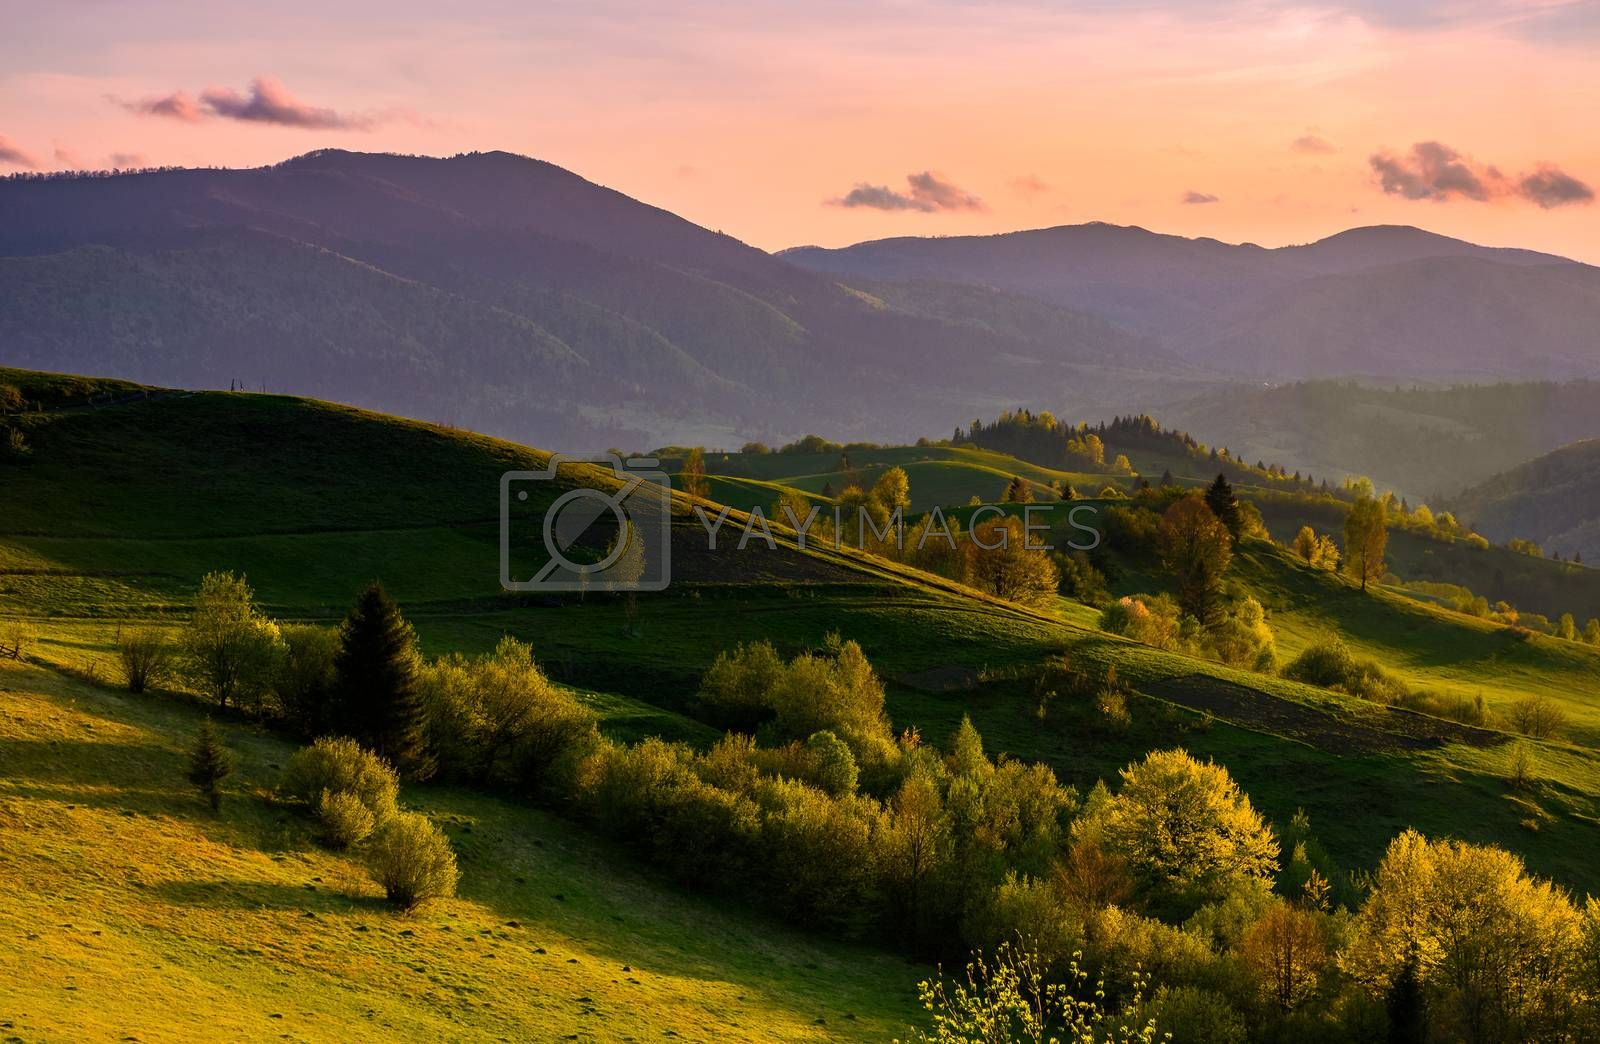 countryside landscape in mountains at sunset. grassy meadow on a hill behind the fence. spectacular evening sky with red clouds